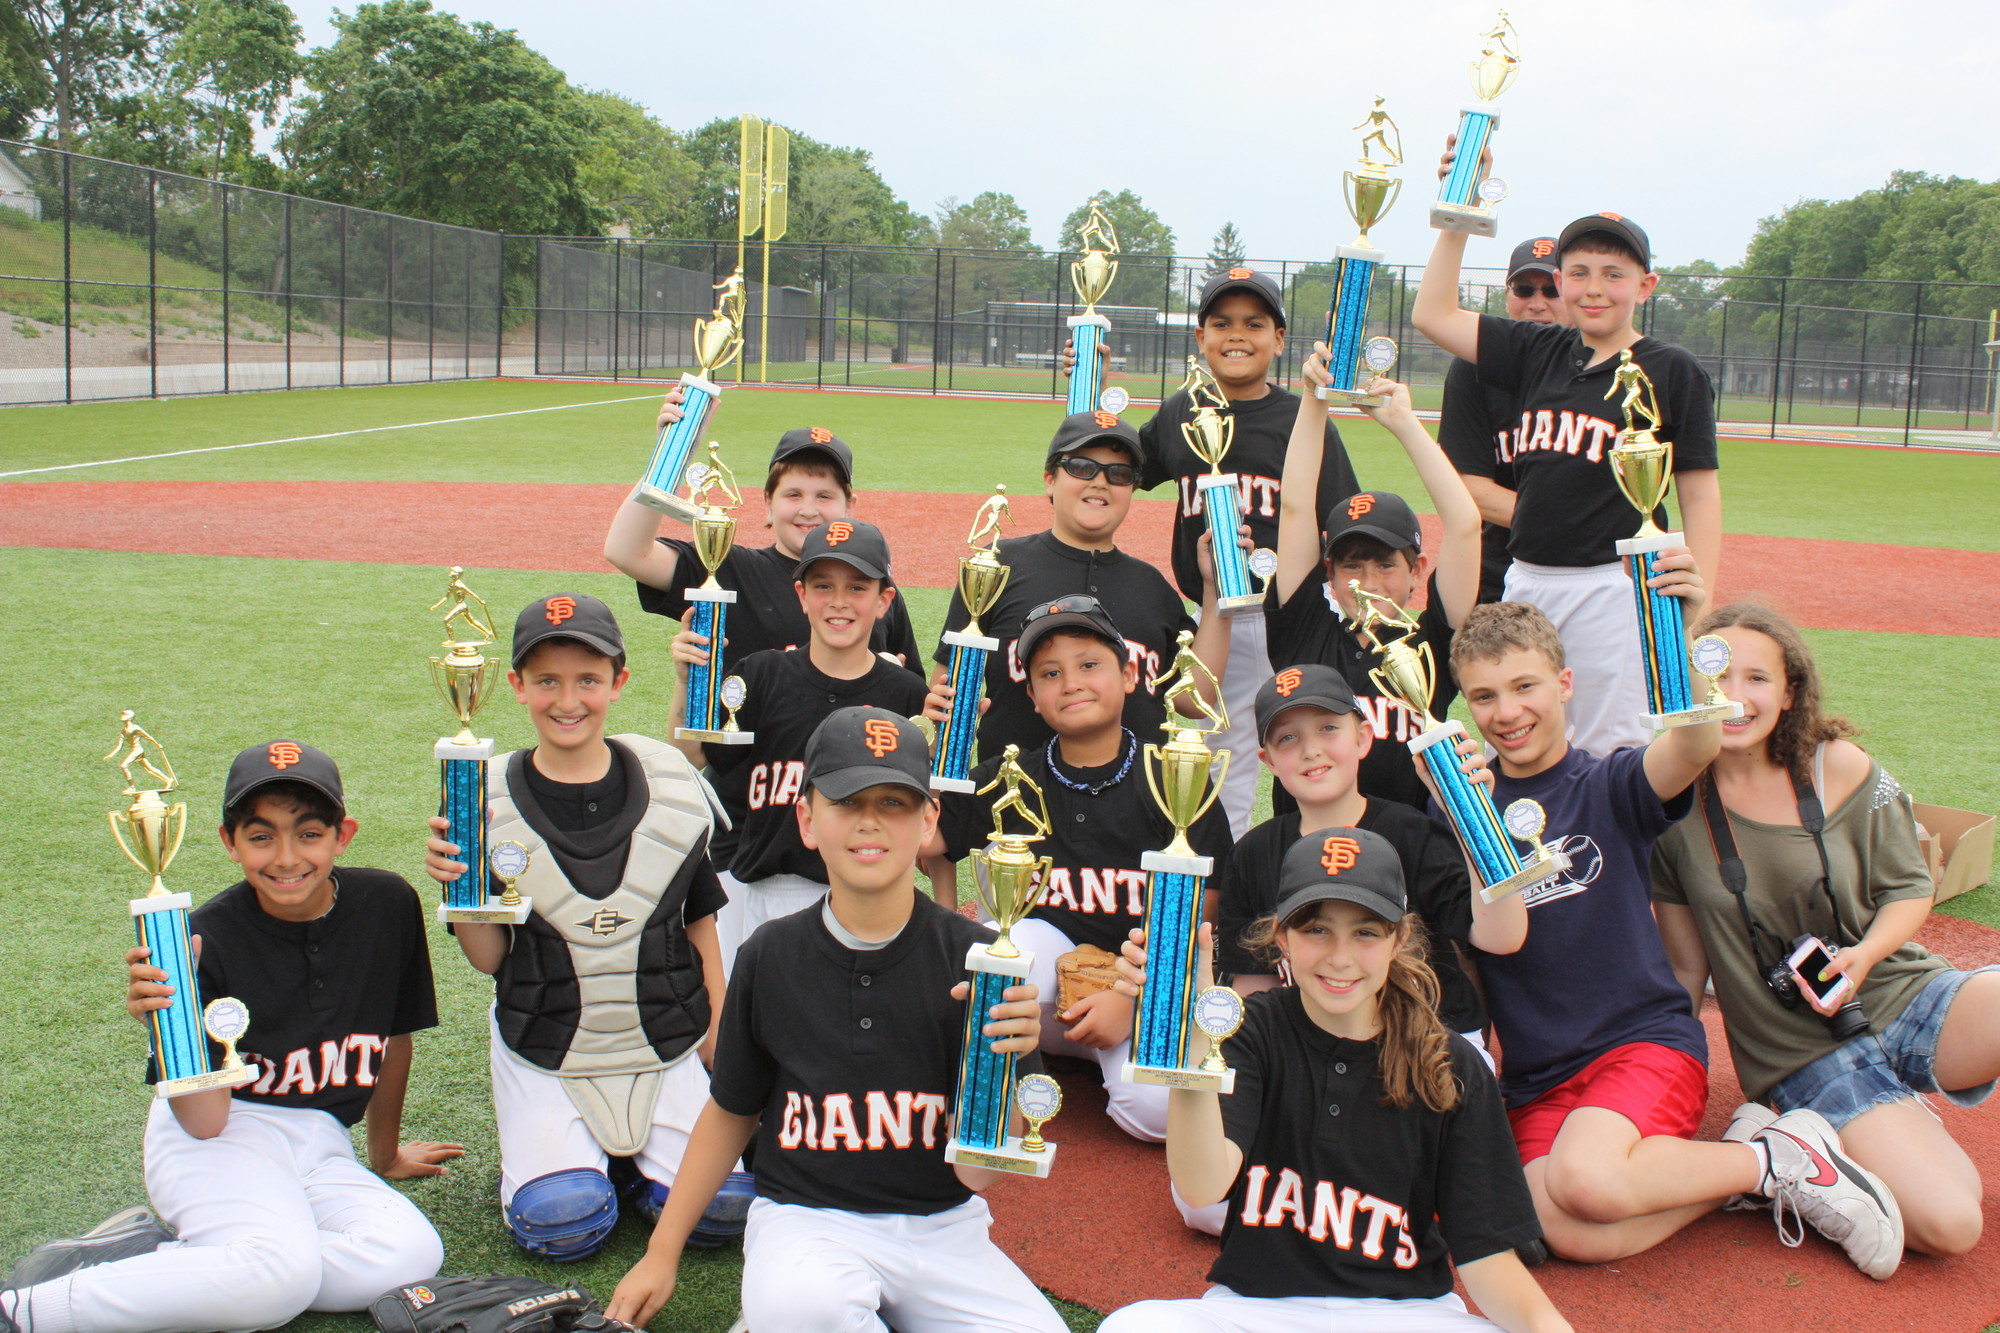 Trophies were raised after the Giants won the Intermediate Division crown.